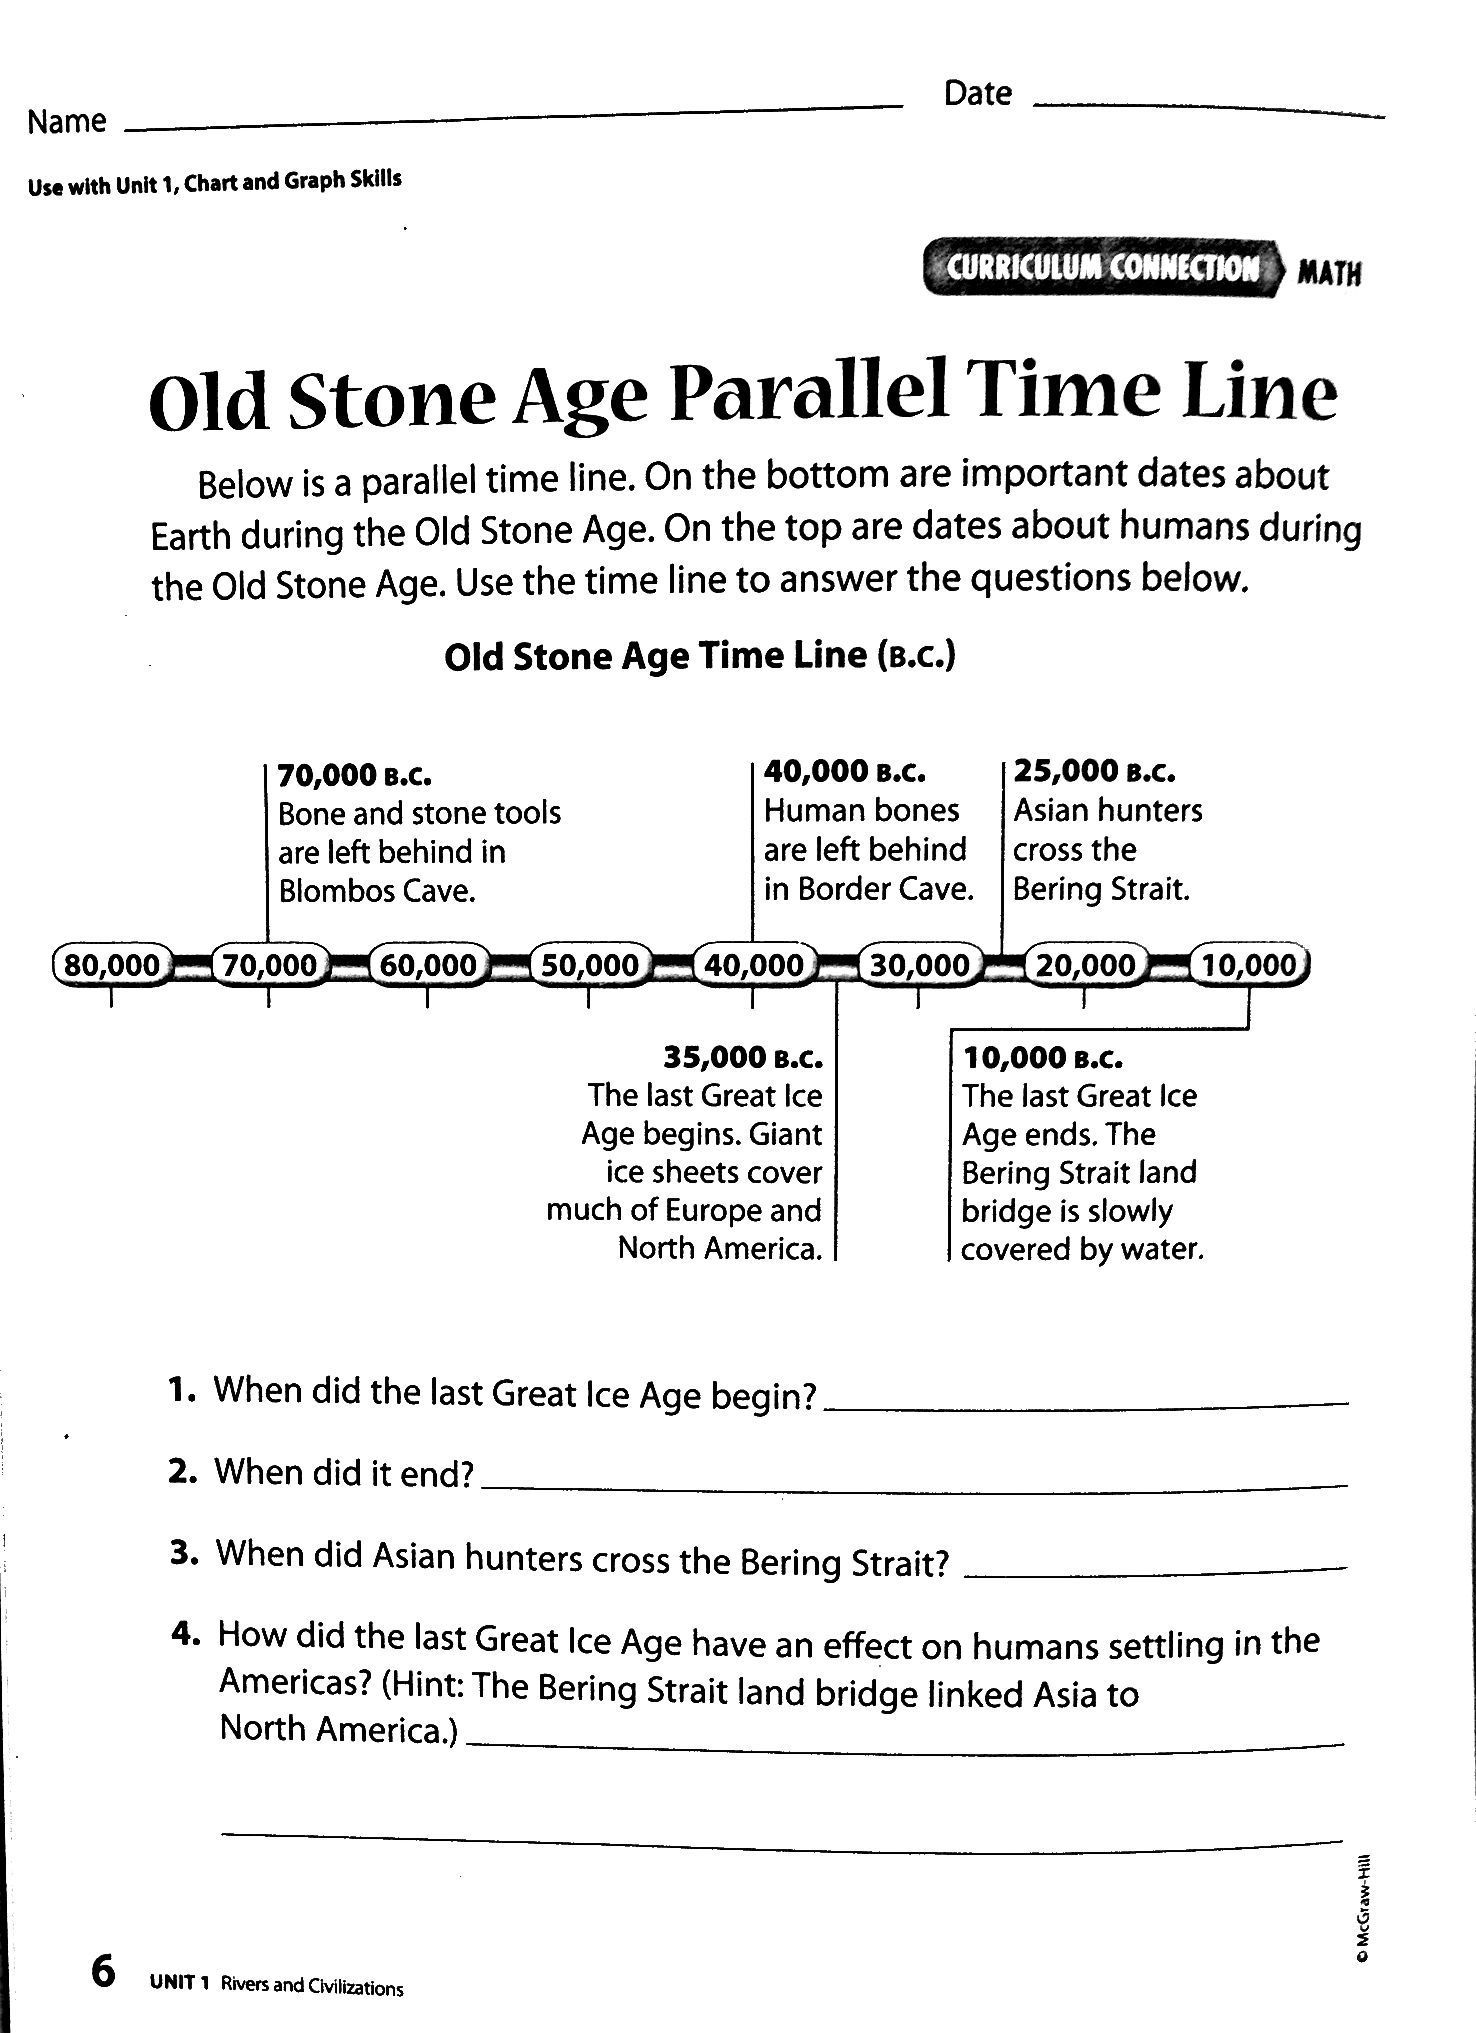 Old Stone Age Parallel Time Line 1 476 2 033 Pixels